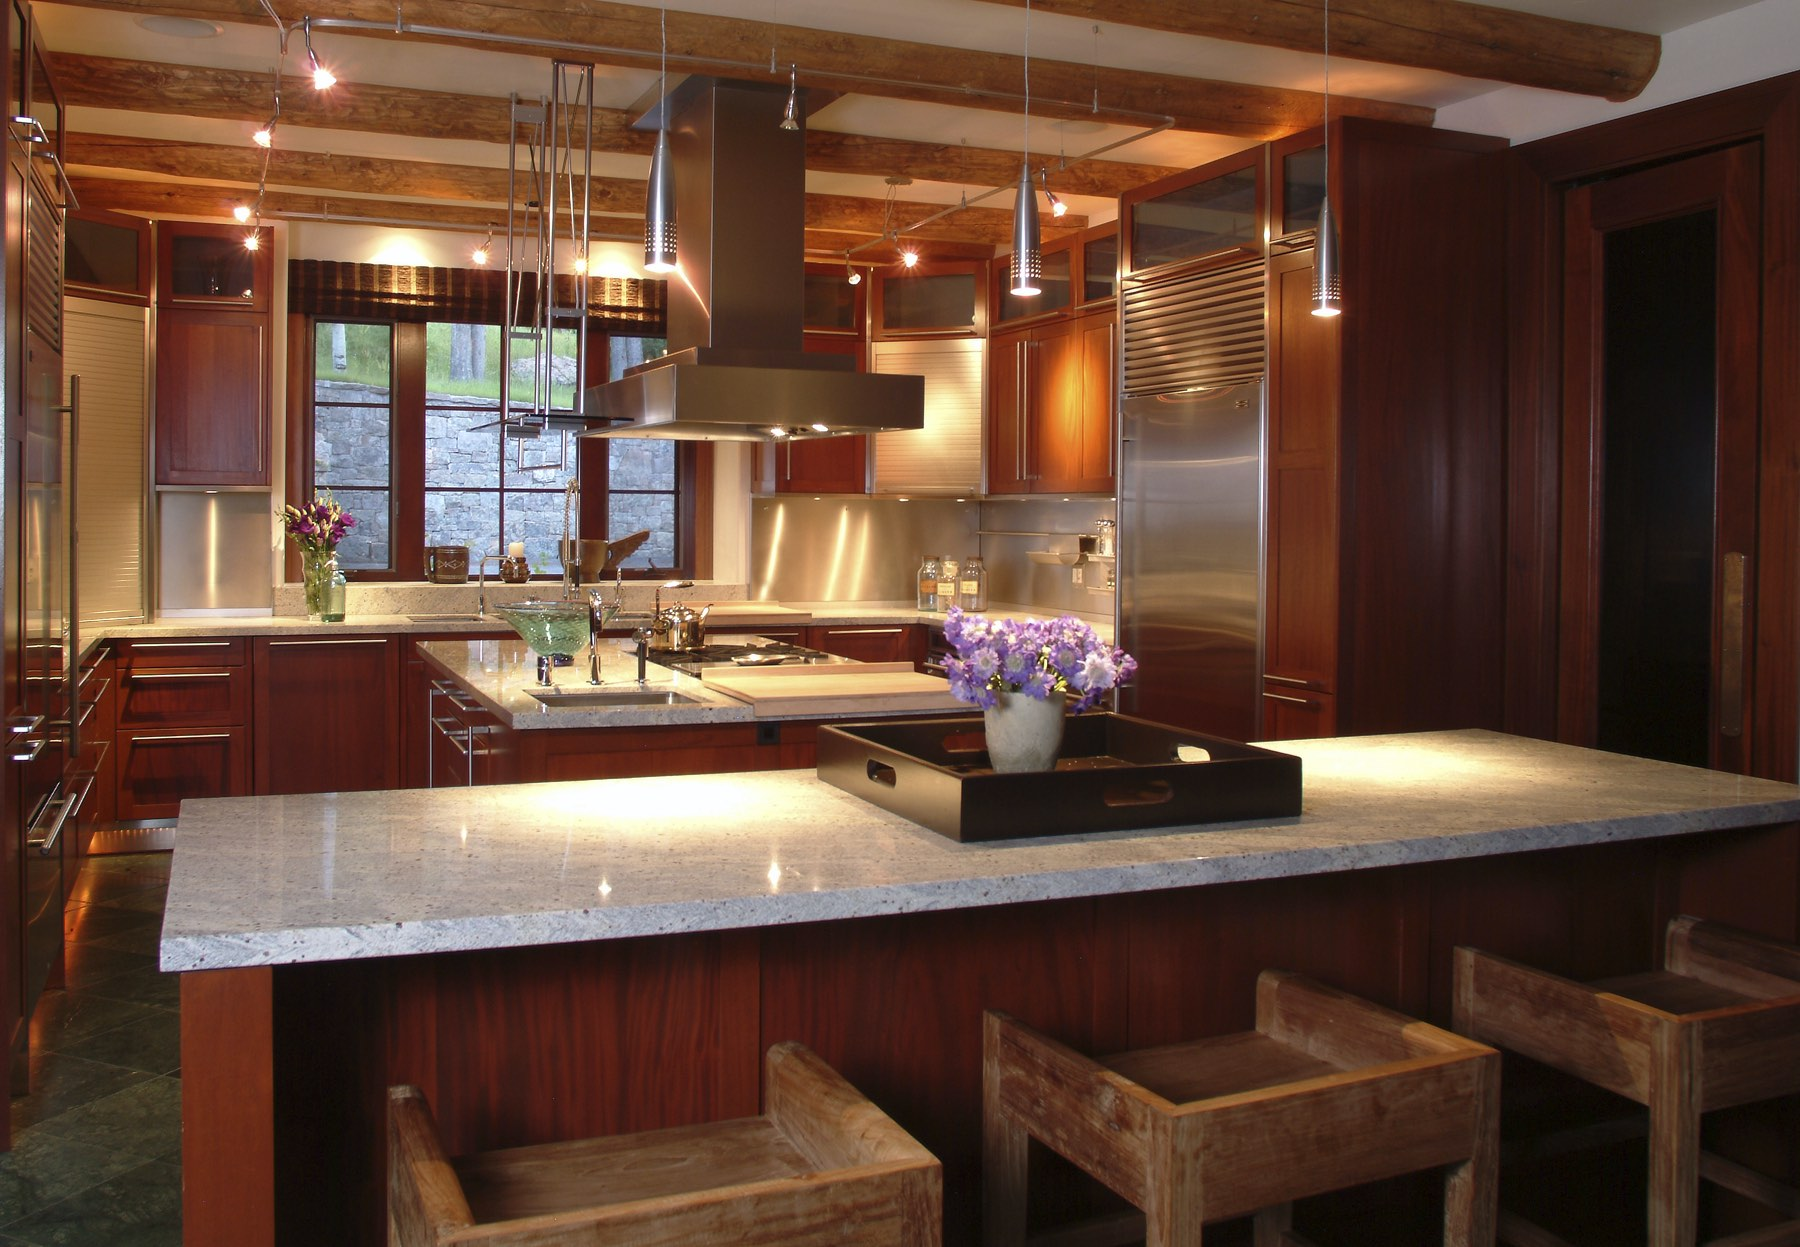 Modern kitchen with red cabinets, marble countertops, and modern appliances